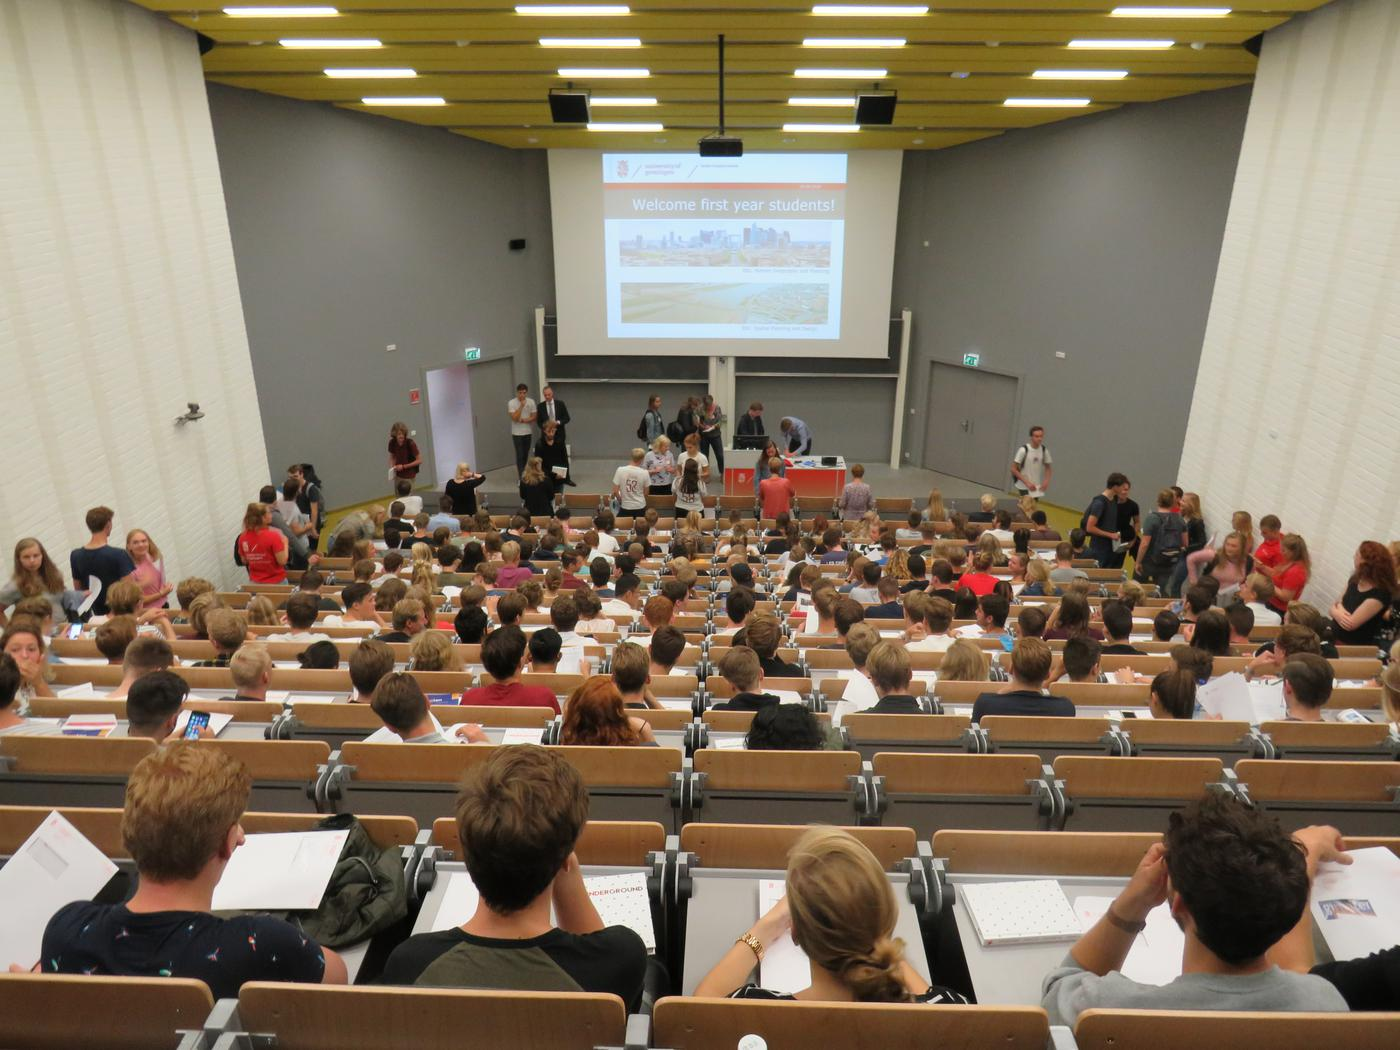 Introduction Day